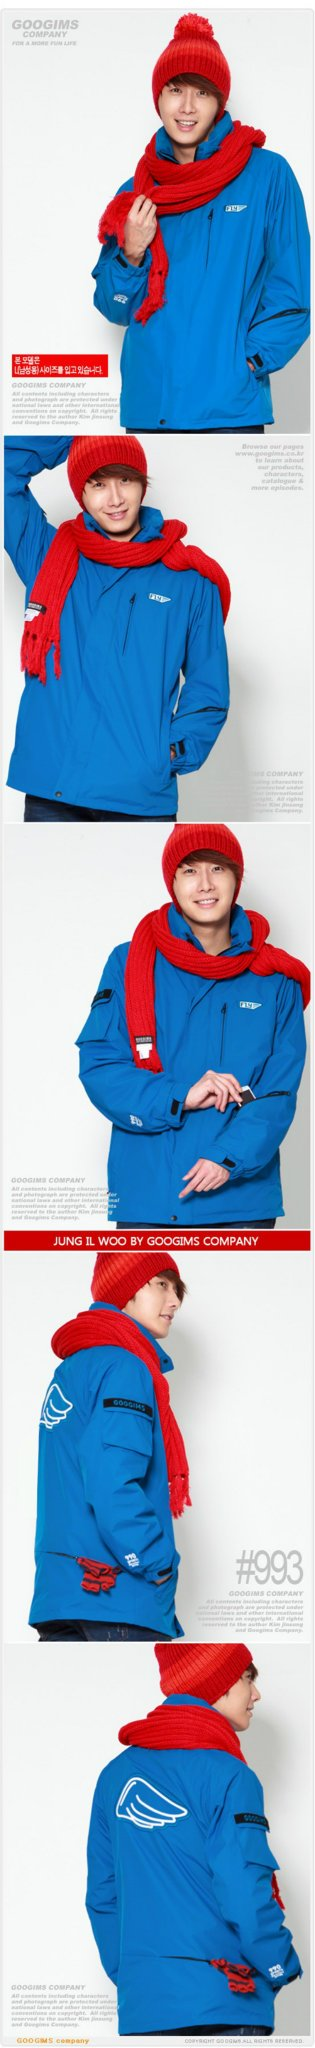 2011 10 Jung II-woo for Googims. Part 100010